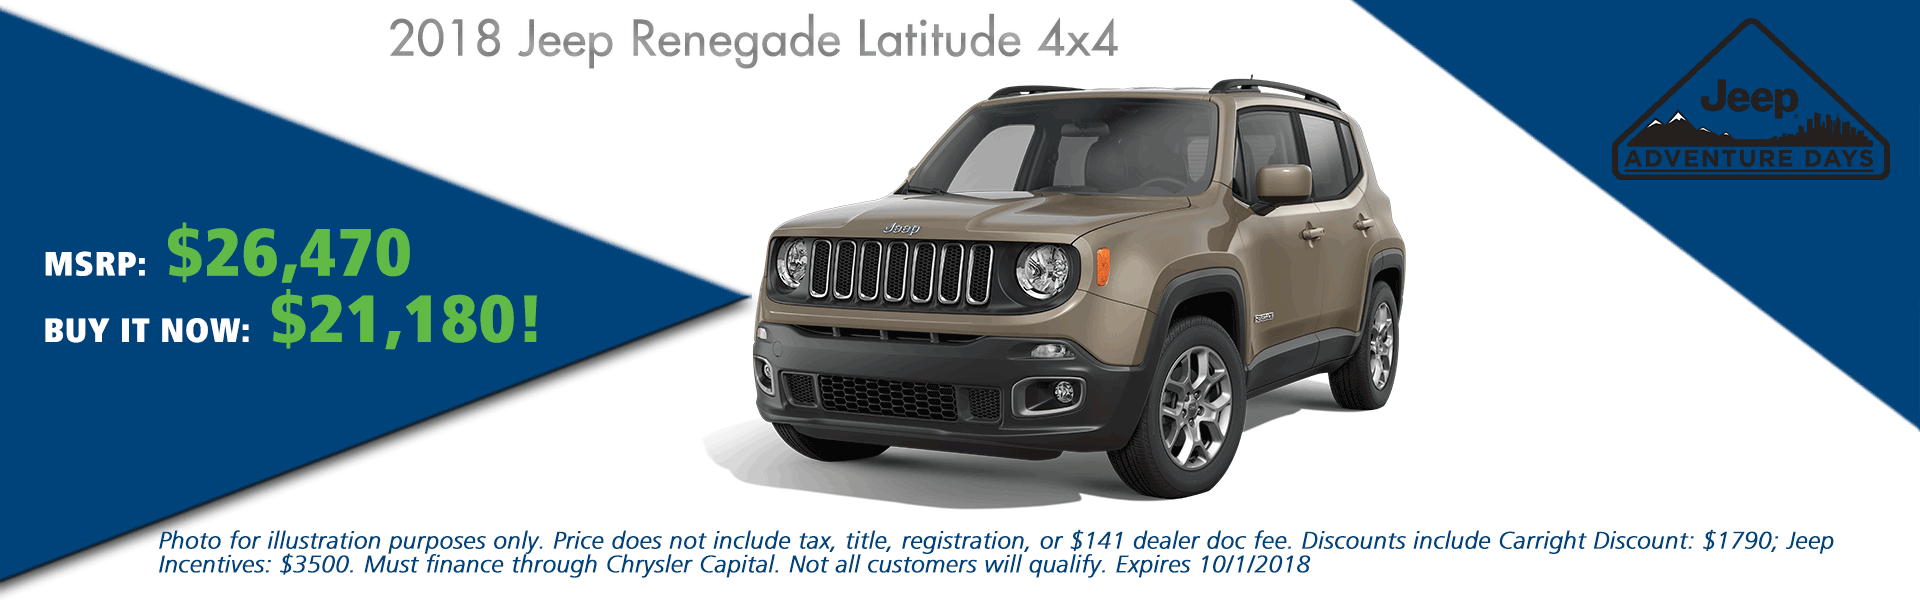 CarRight Chrysler Jeep Dodge Ram, Moon Township, PA Sales Service Body Shop Parts NEW 2018 JEEP RENEGADE LATITUDE 4X4